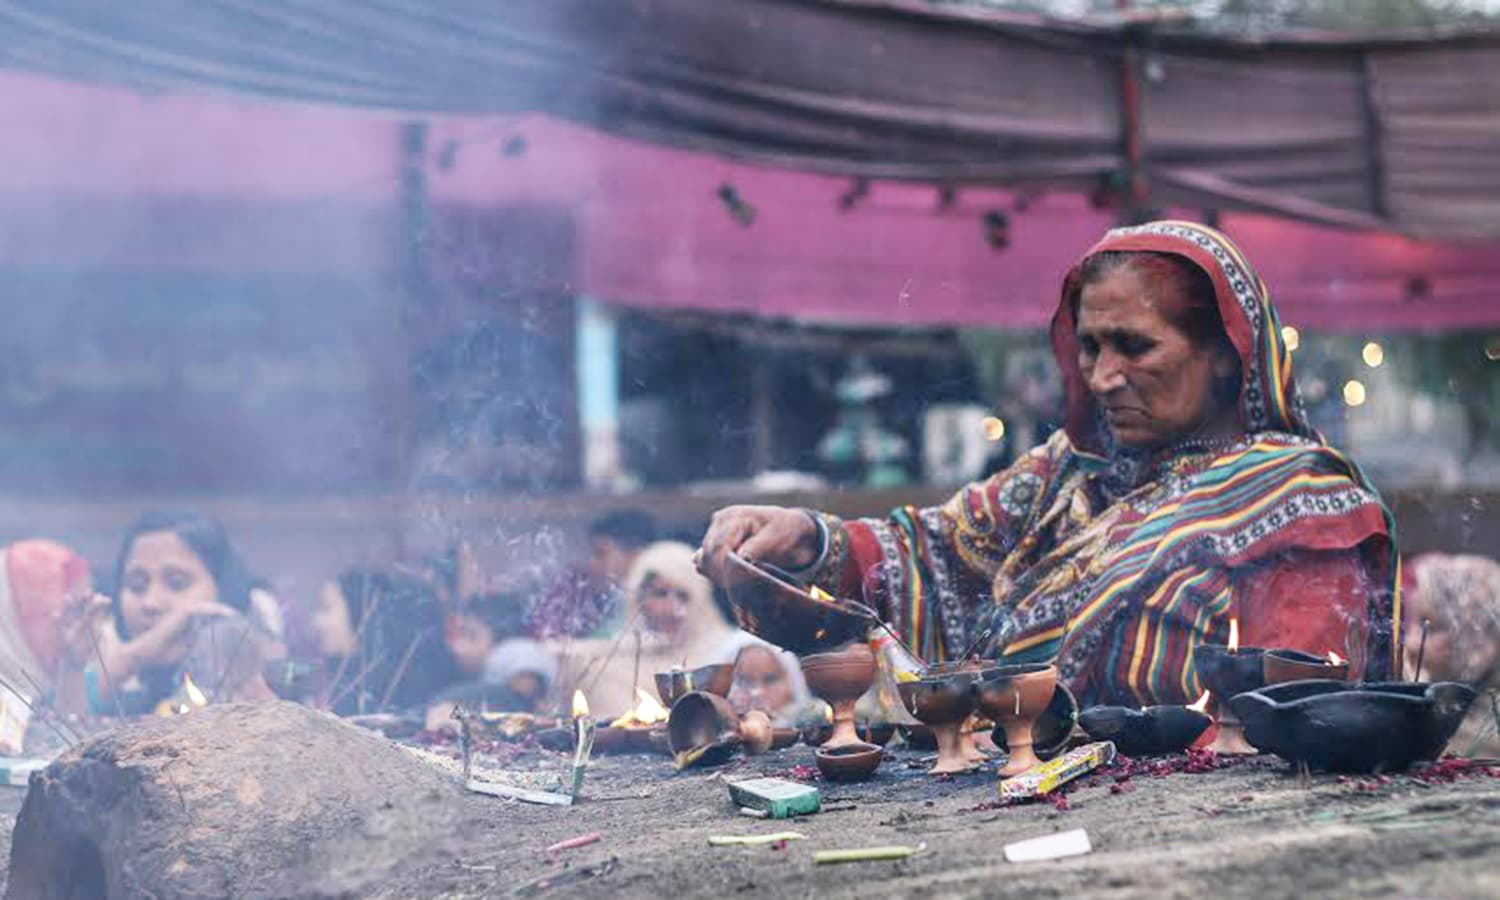 An old woman is pouring oil from a lamp which is considered a blessing.